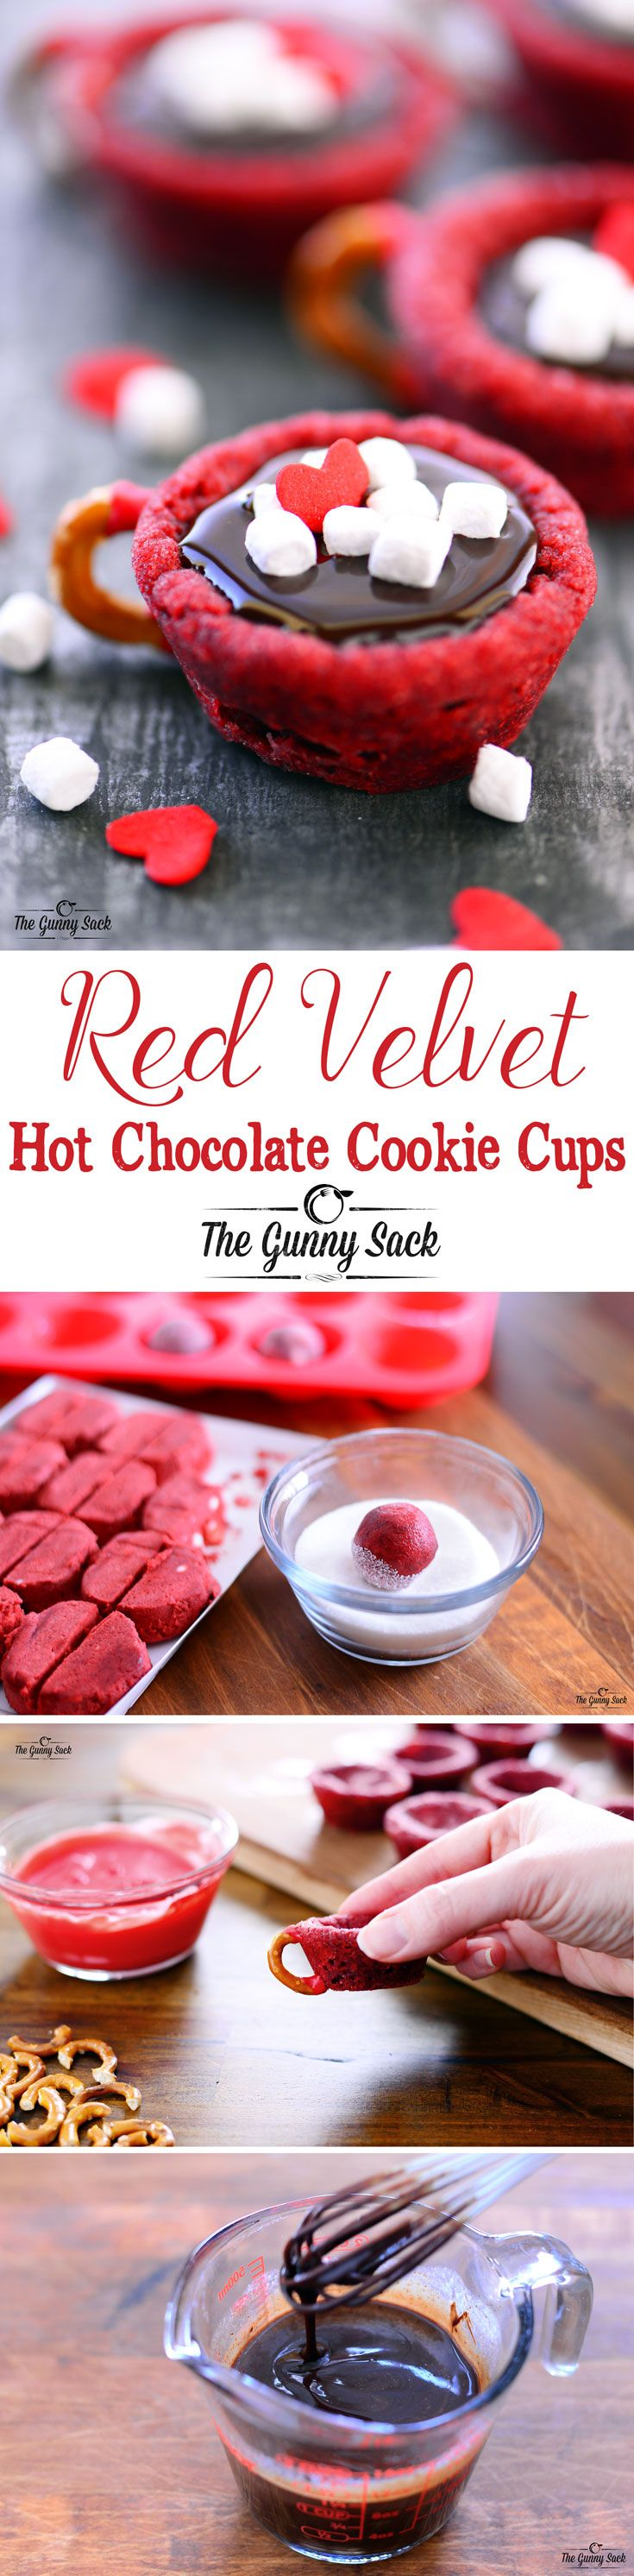 25+ best ideas about Hot chocolate cookies on Pinterest | Hot ...